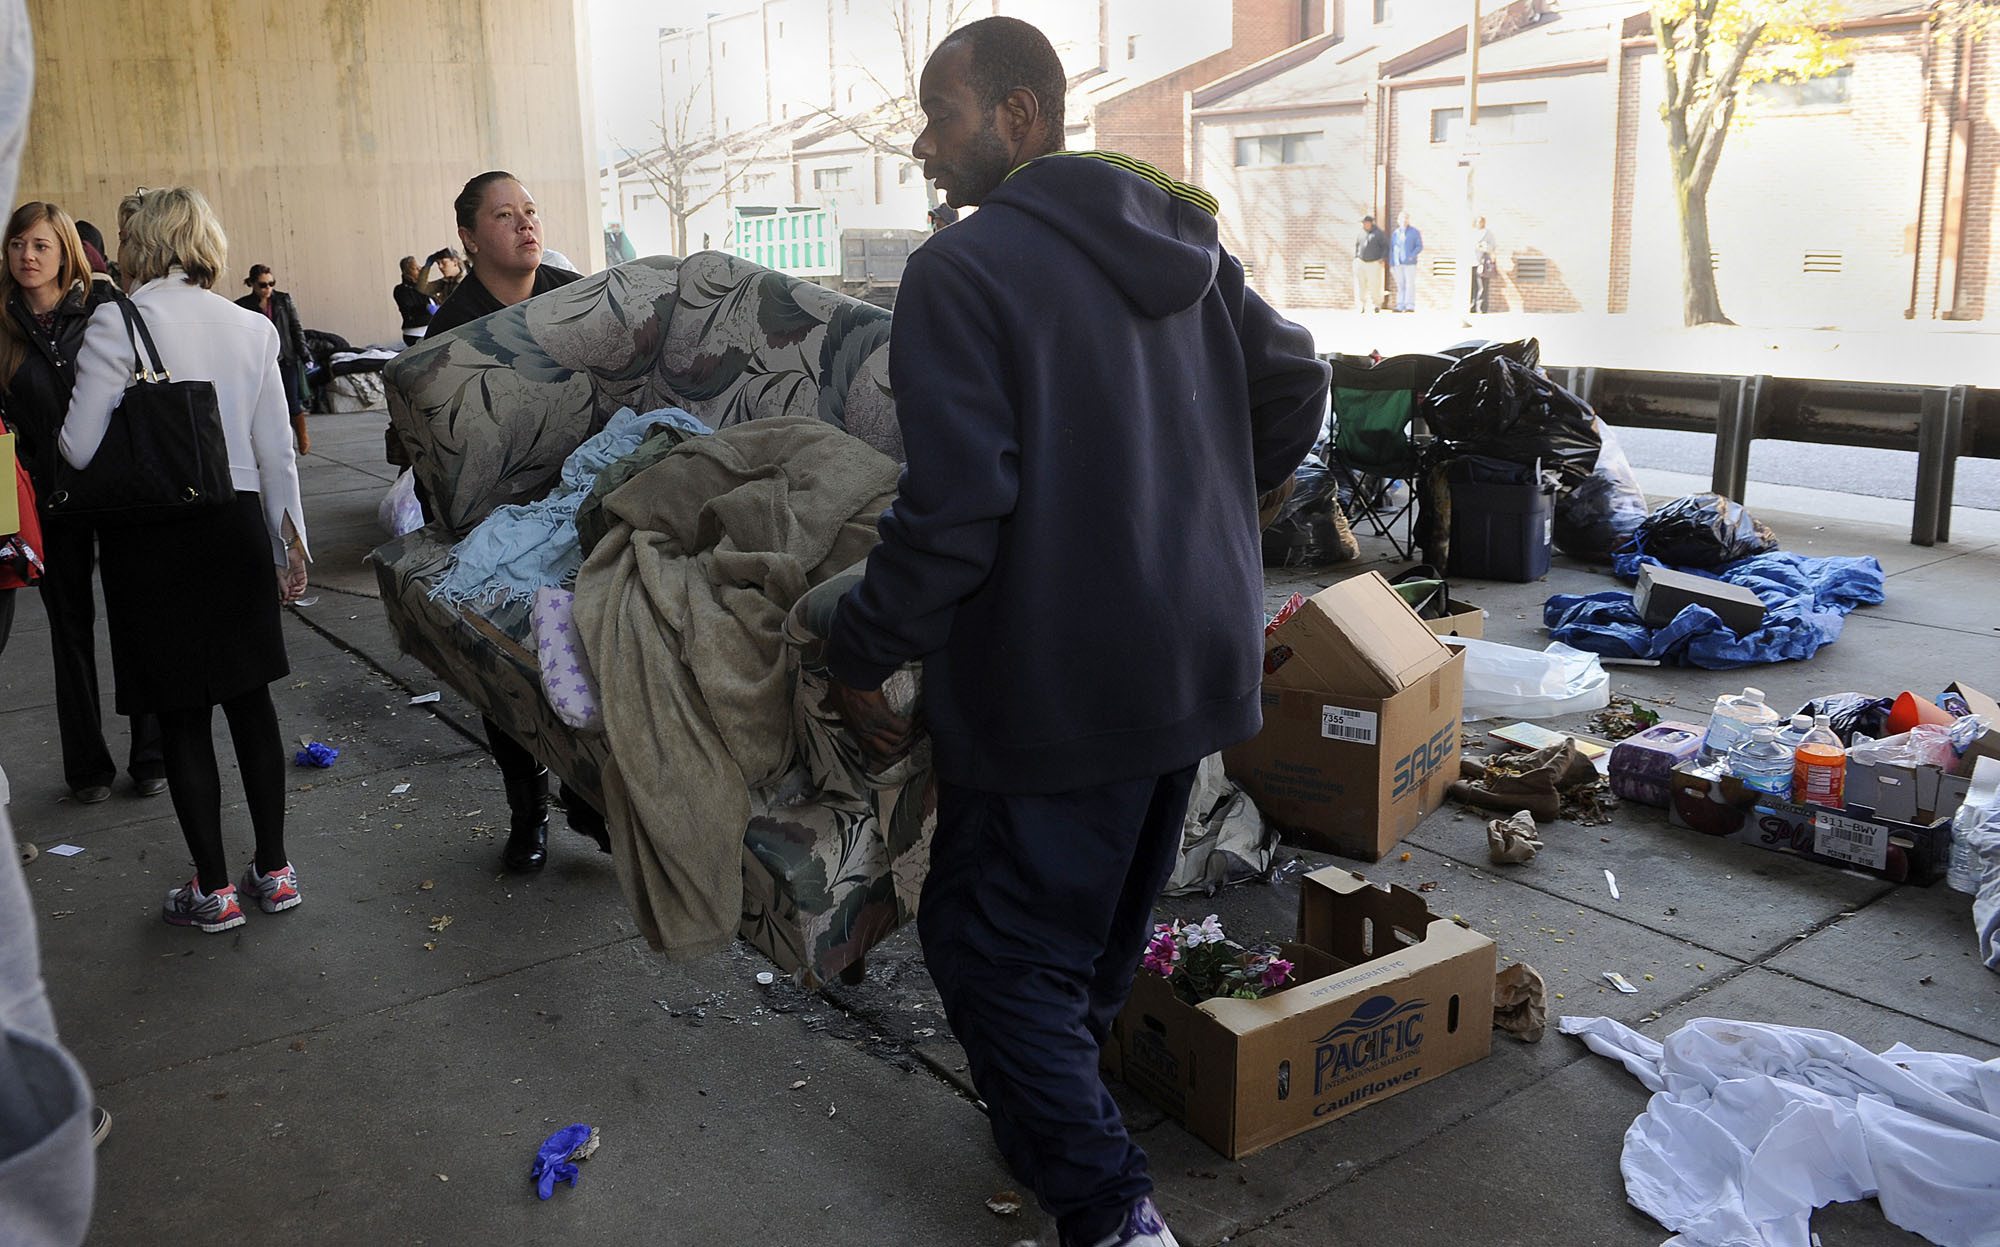 Downtown Baltimore Homeless Encampment Targeted In Regular